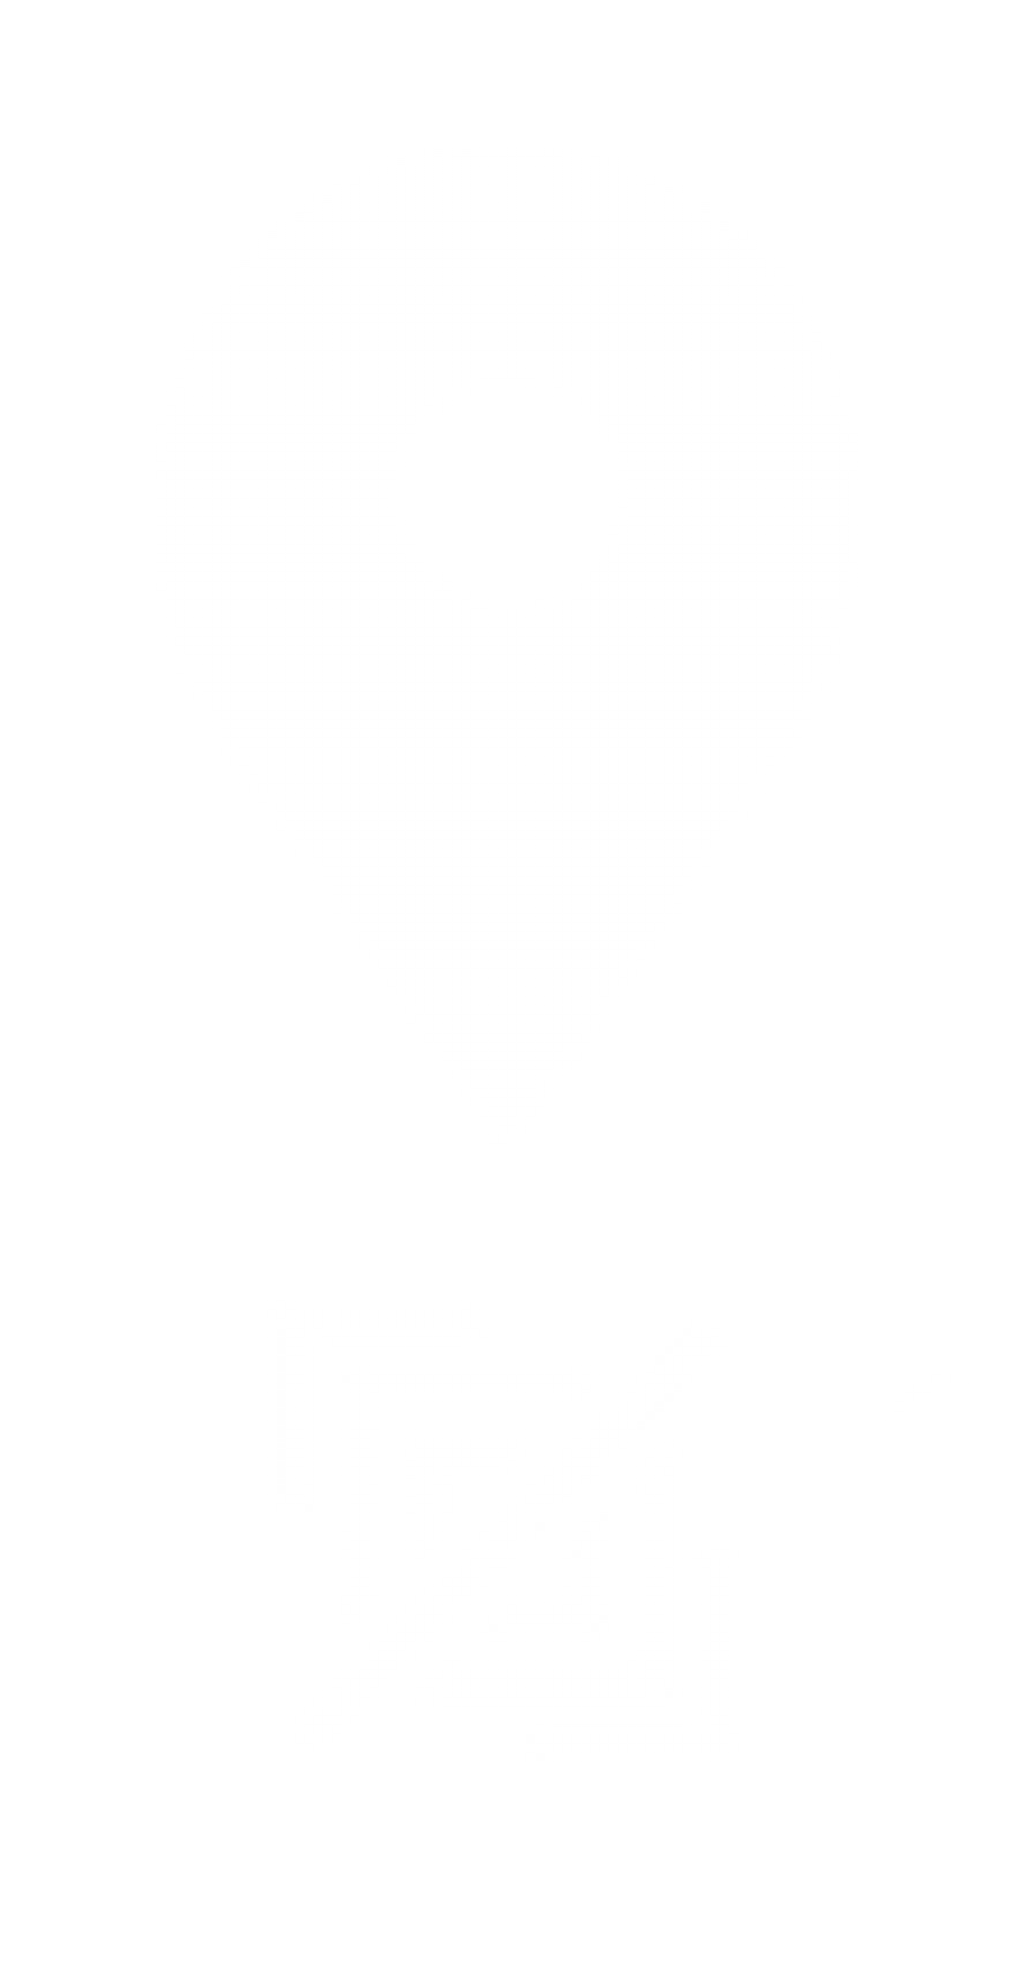 logo_craftex_location_white